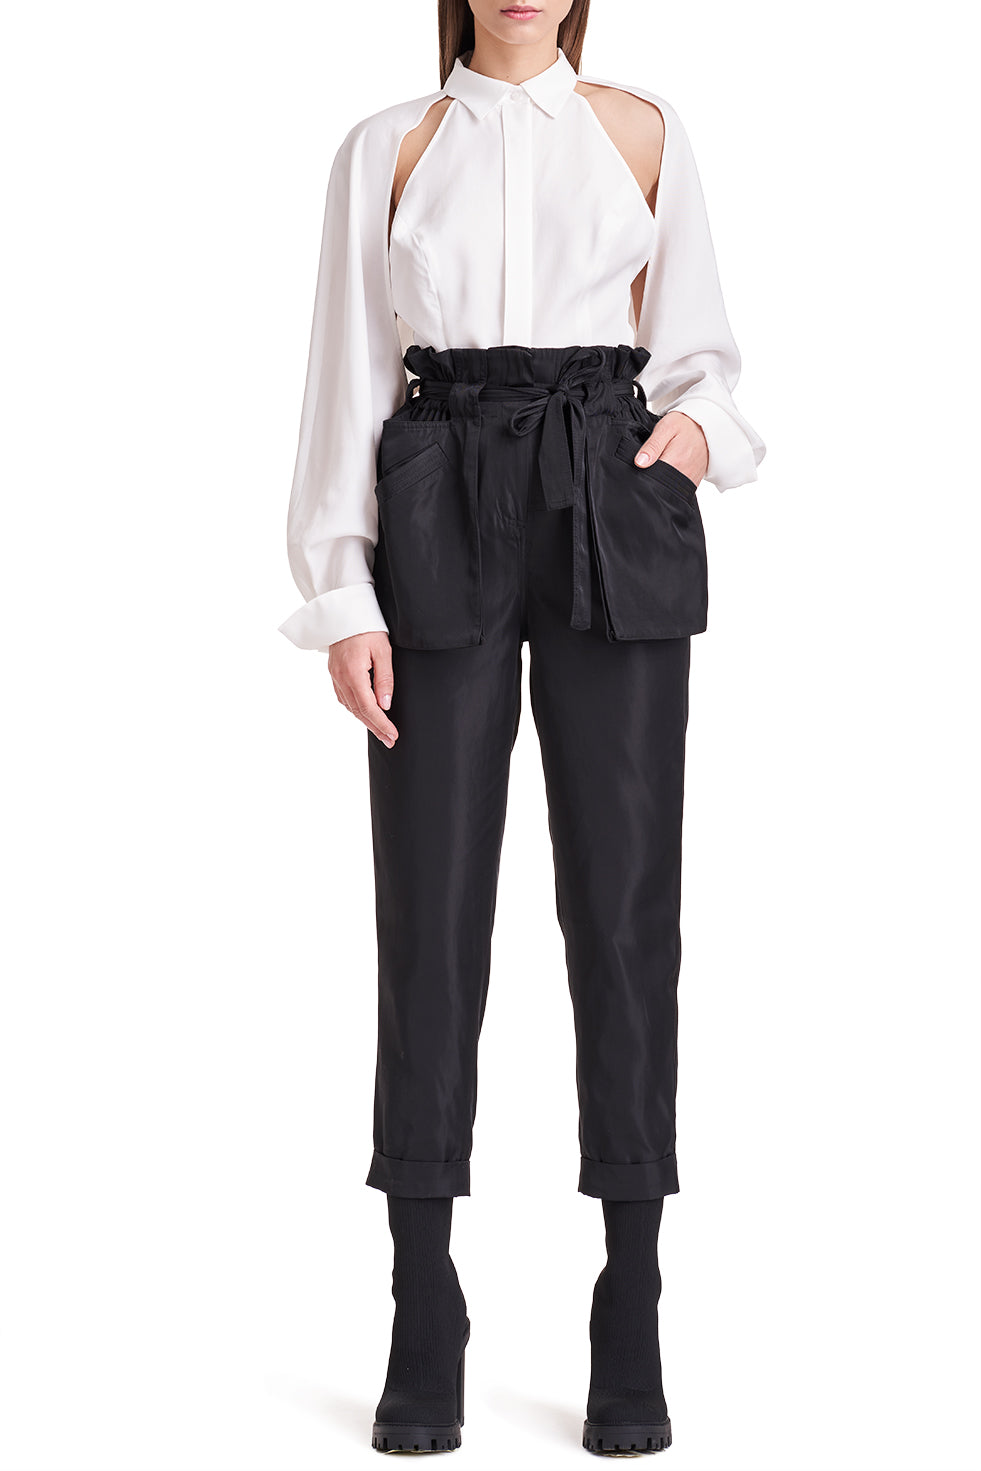 Amena Sleek Paper Bag Trousers